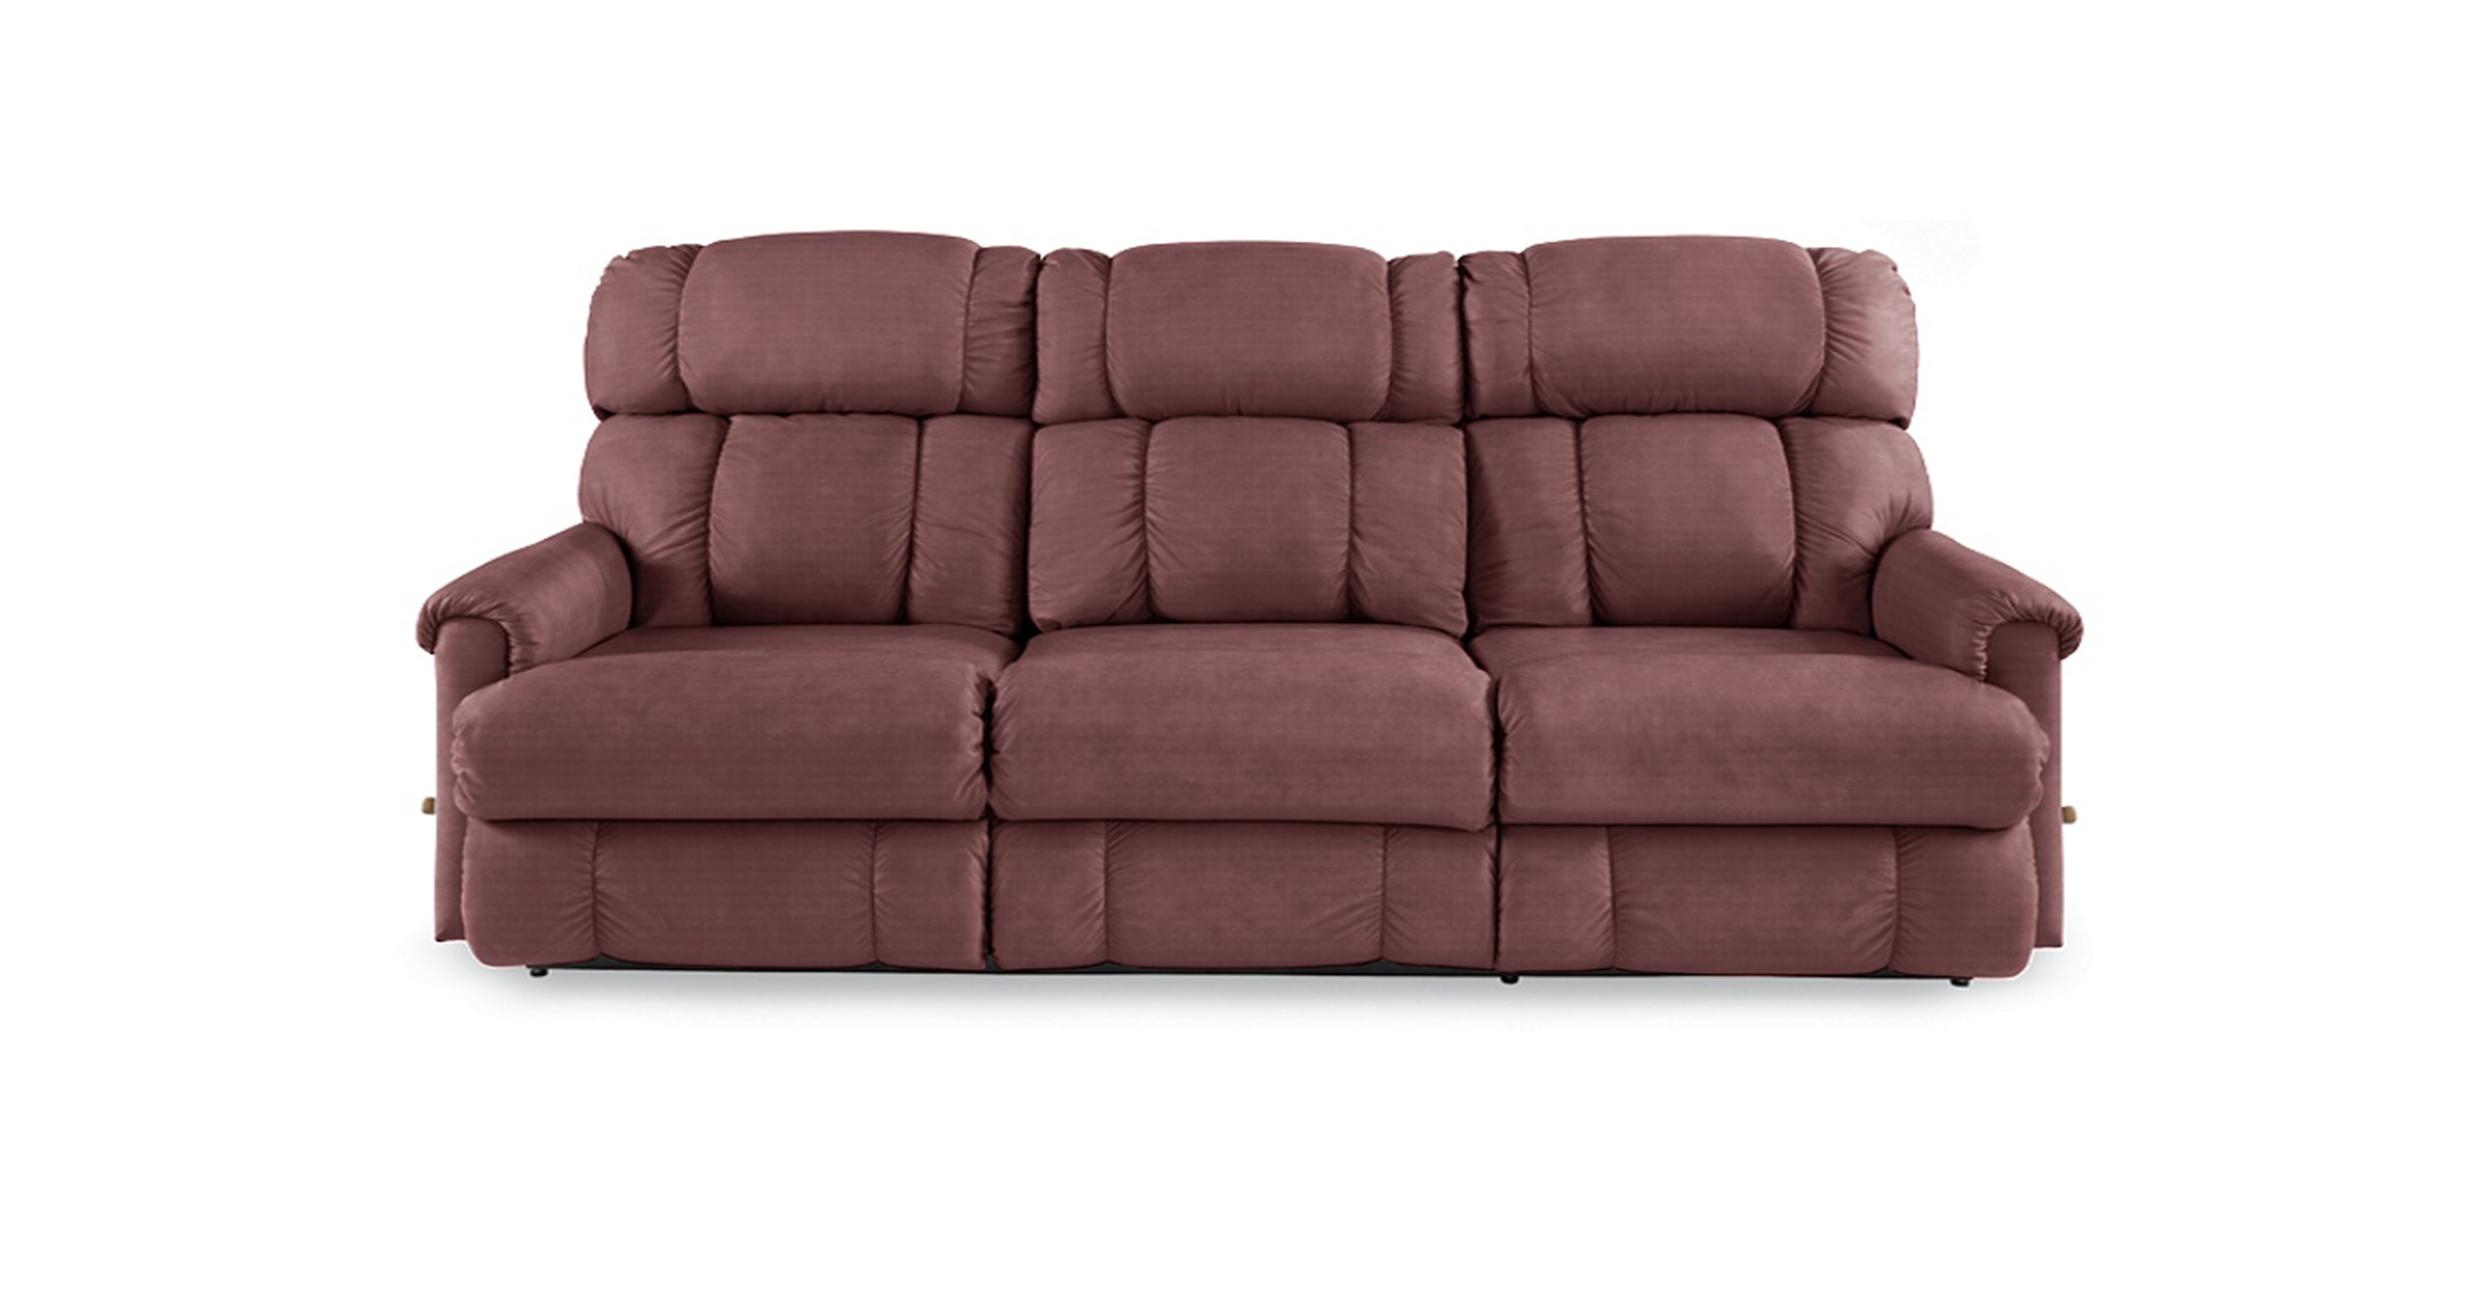 Lazy Boy Sofas And Loveseats – Cornett's Furniture And Bedding In Lazy Boy Sofas (View 12 of 20)